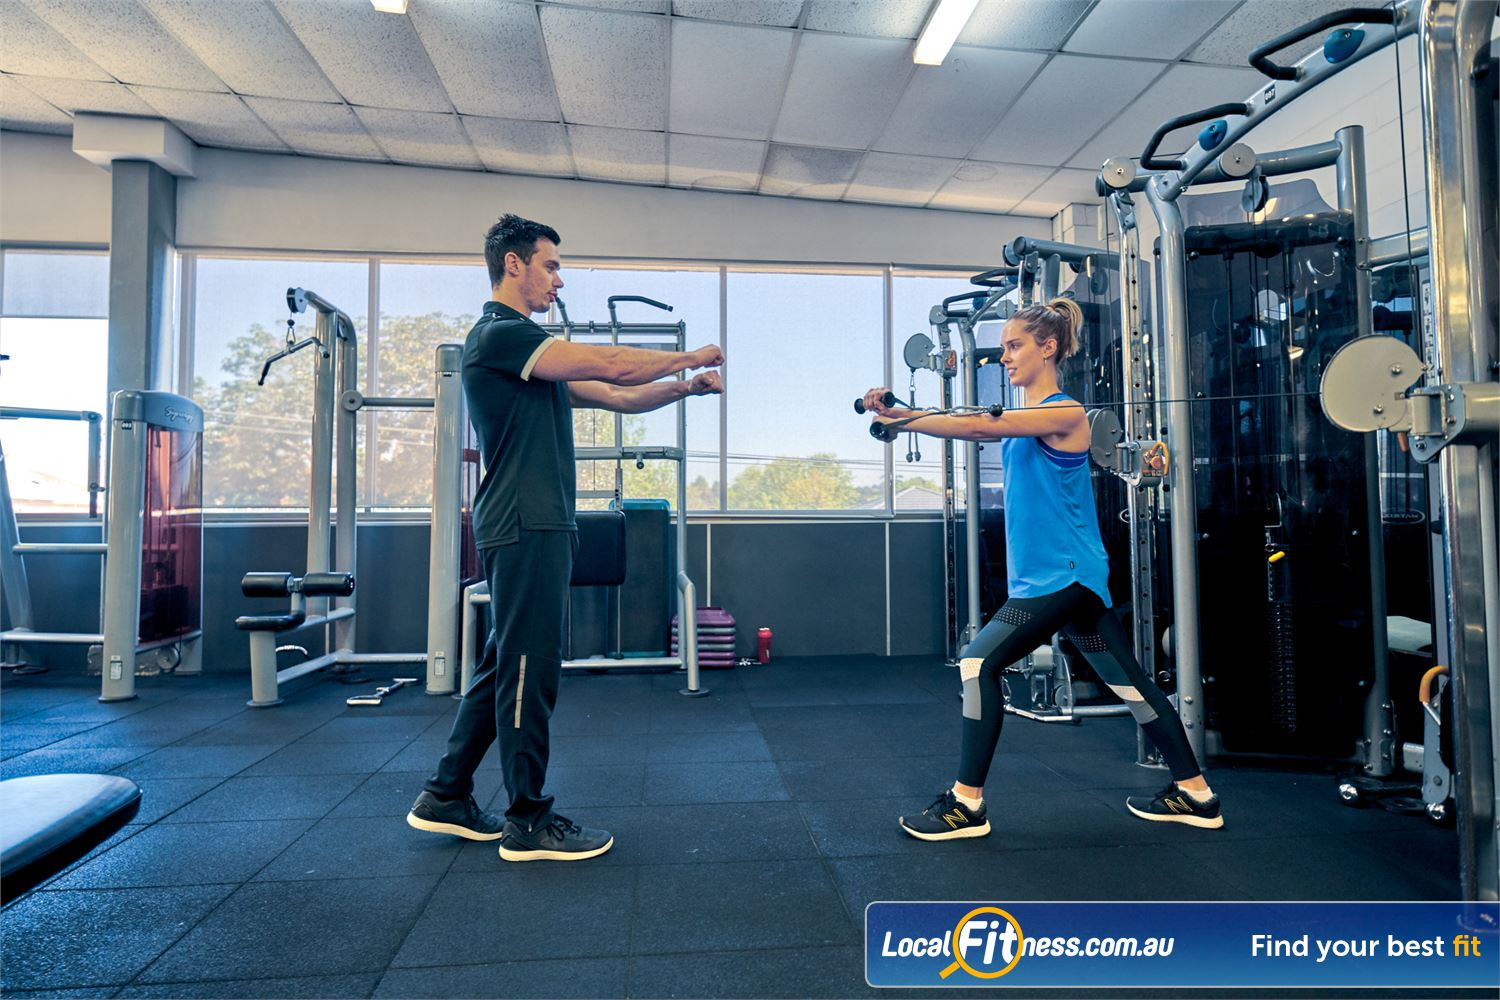 Goodlife Health Clubs Balwyn Our Balwyn gym is fully equipped with state of the art pin-loading equipment.